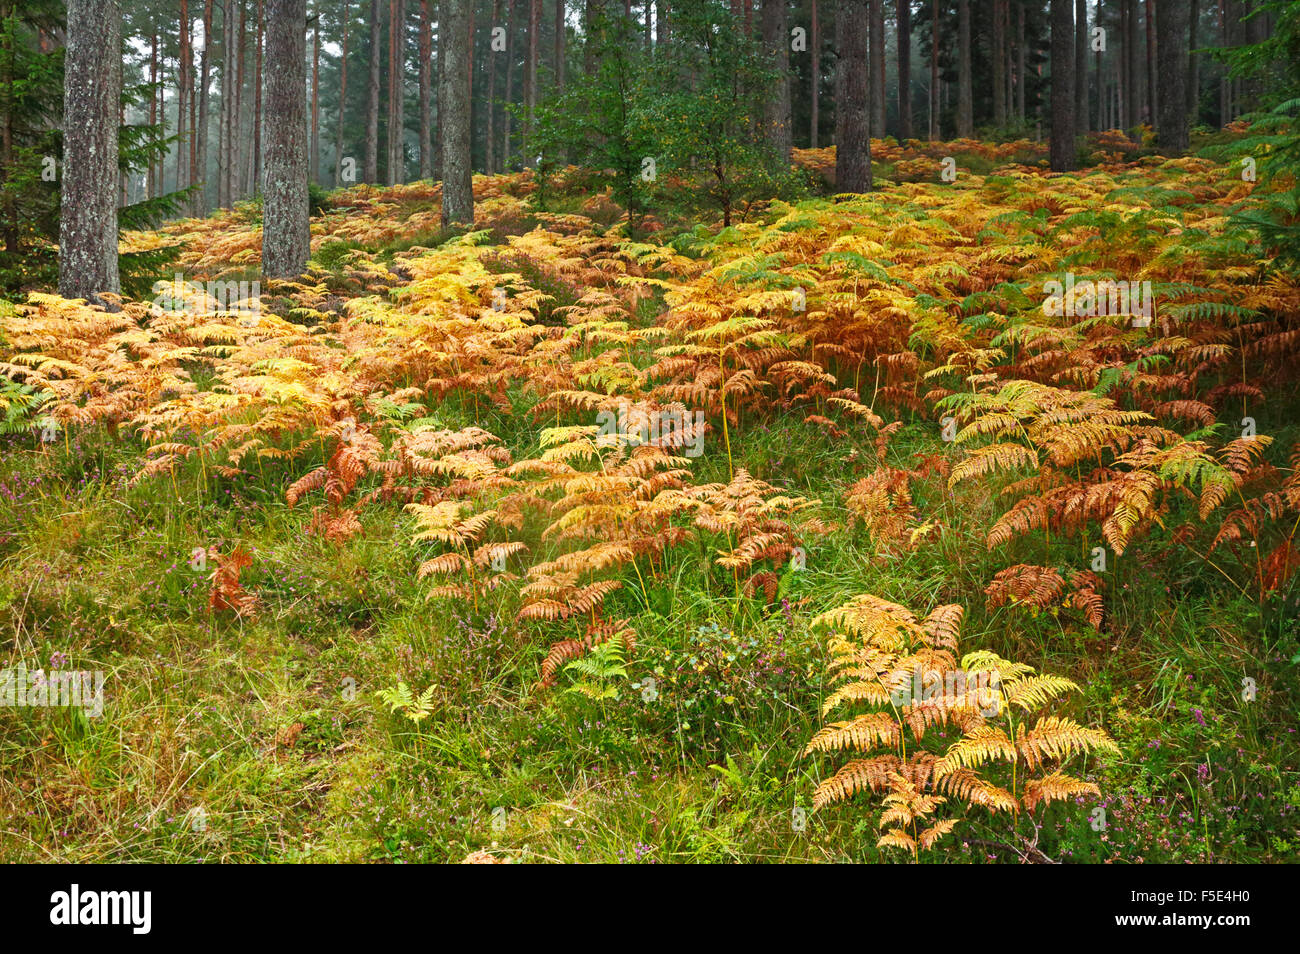 A view of Bracken in autumn colour on the forested slopes of The Bin Forest, near Huntley, Aberdeenshire, Scotland, - Stock Image